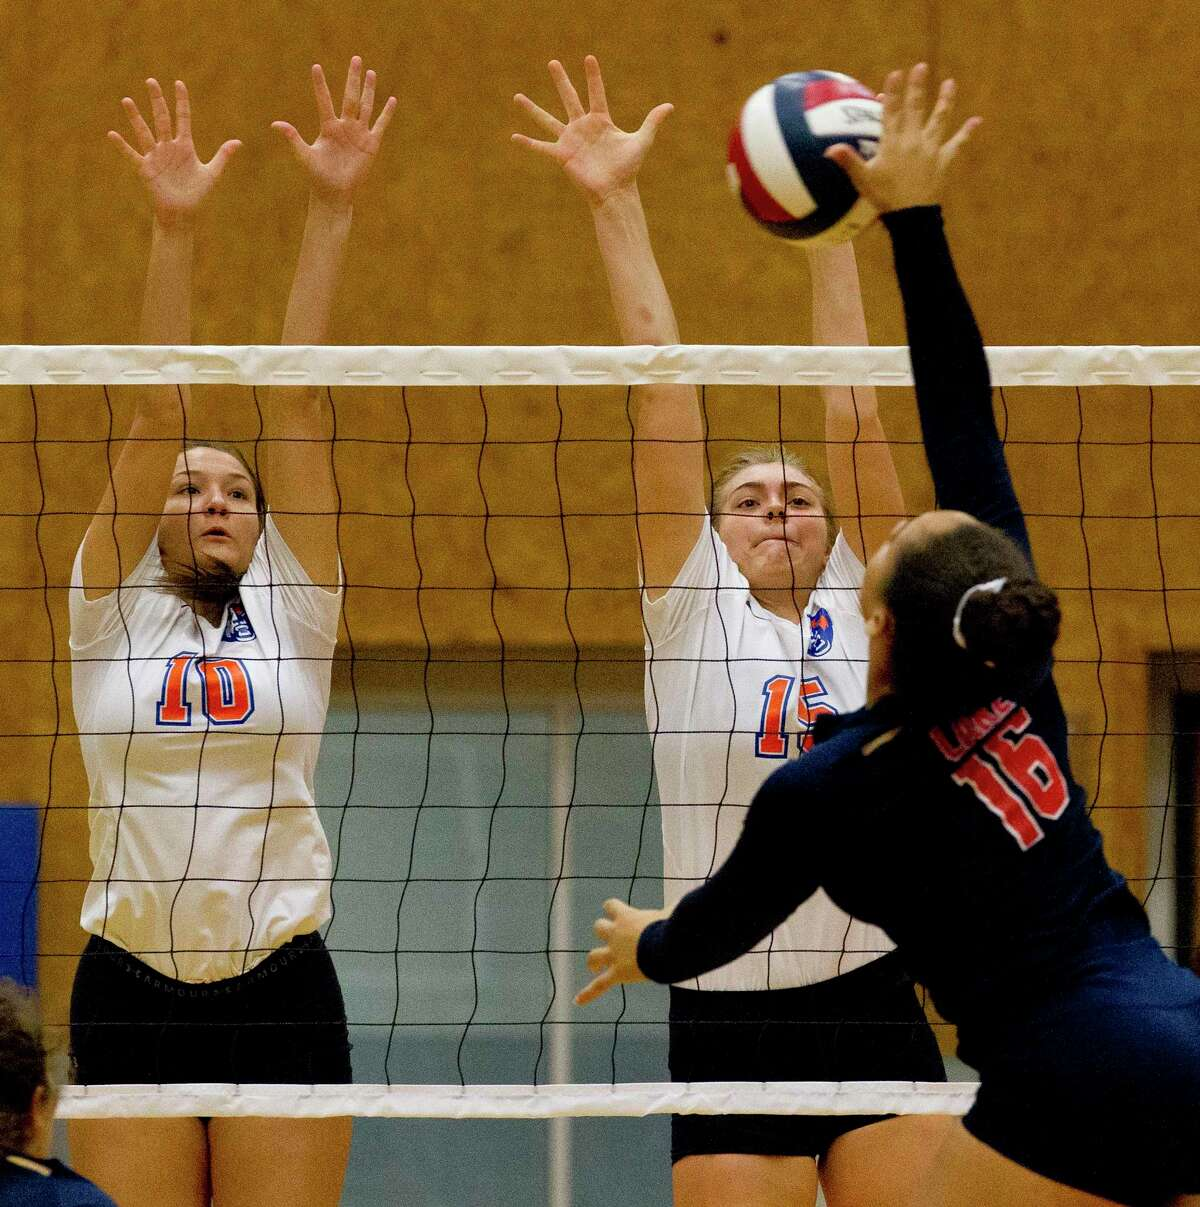 Grand Oaks outside hitter Aidan Ballard (15) and defensive specalist Ryee O'Malley (10) pressure a shot in the first set of a match during the Spring ISD Varsity Volleyball Classic at Dekaney High School, Saturday, Aug. 17, 2019, in Houston.